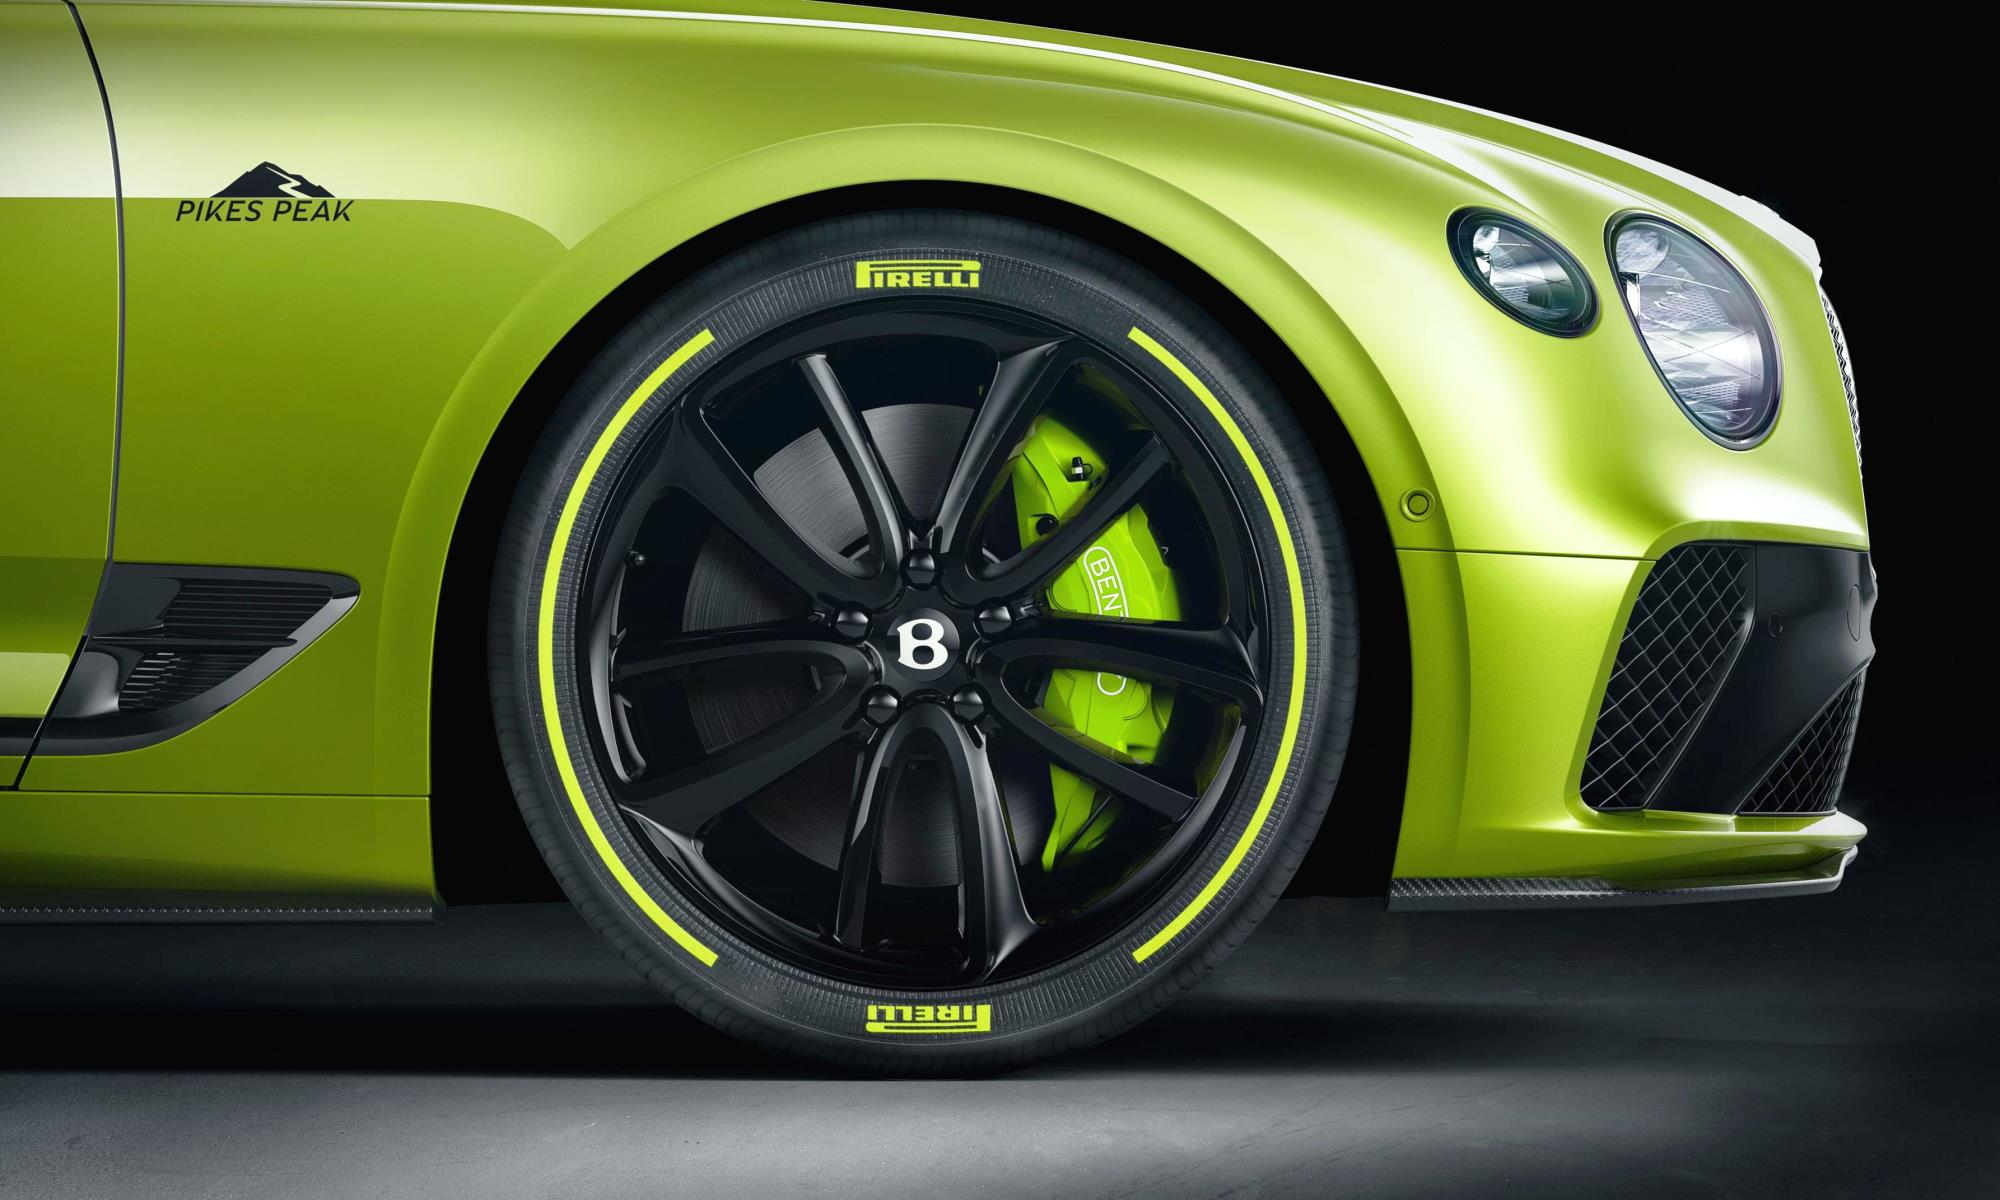 Continental GT Limited Edition wheel